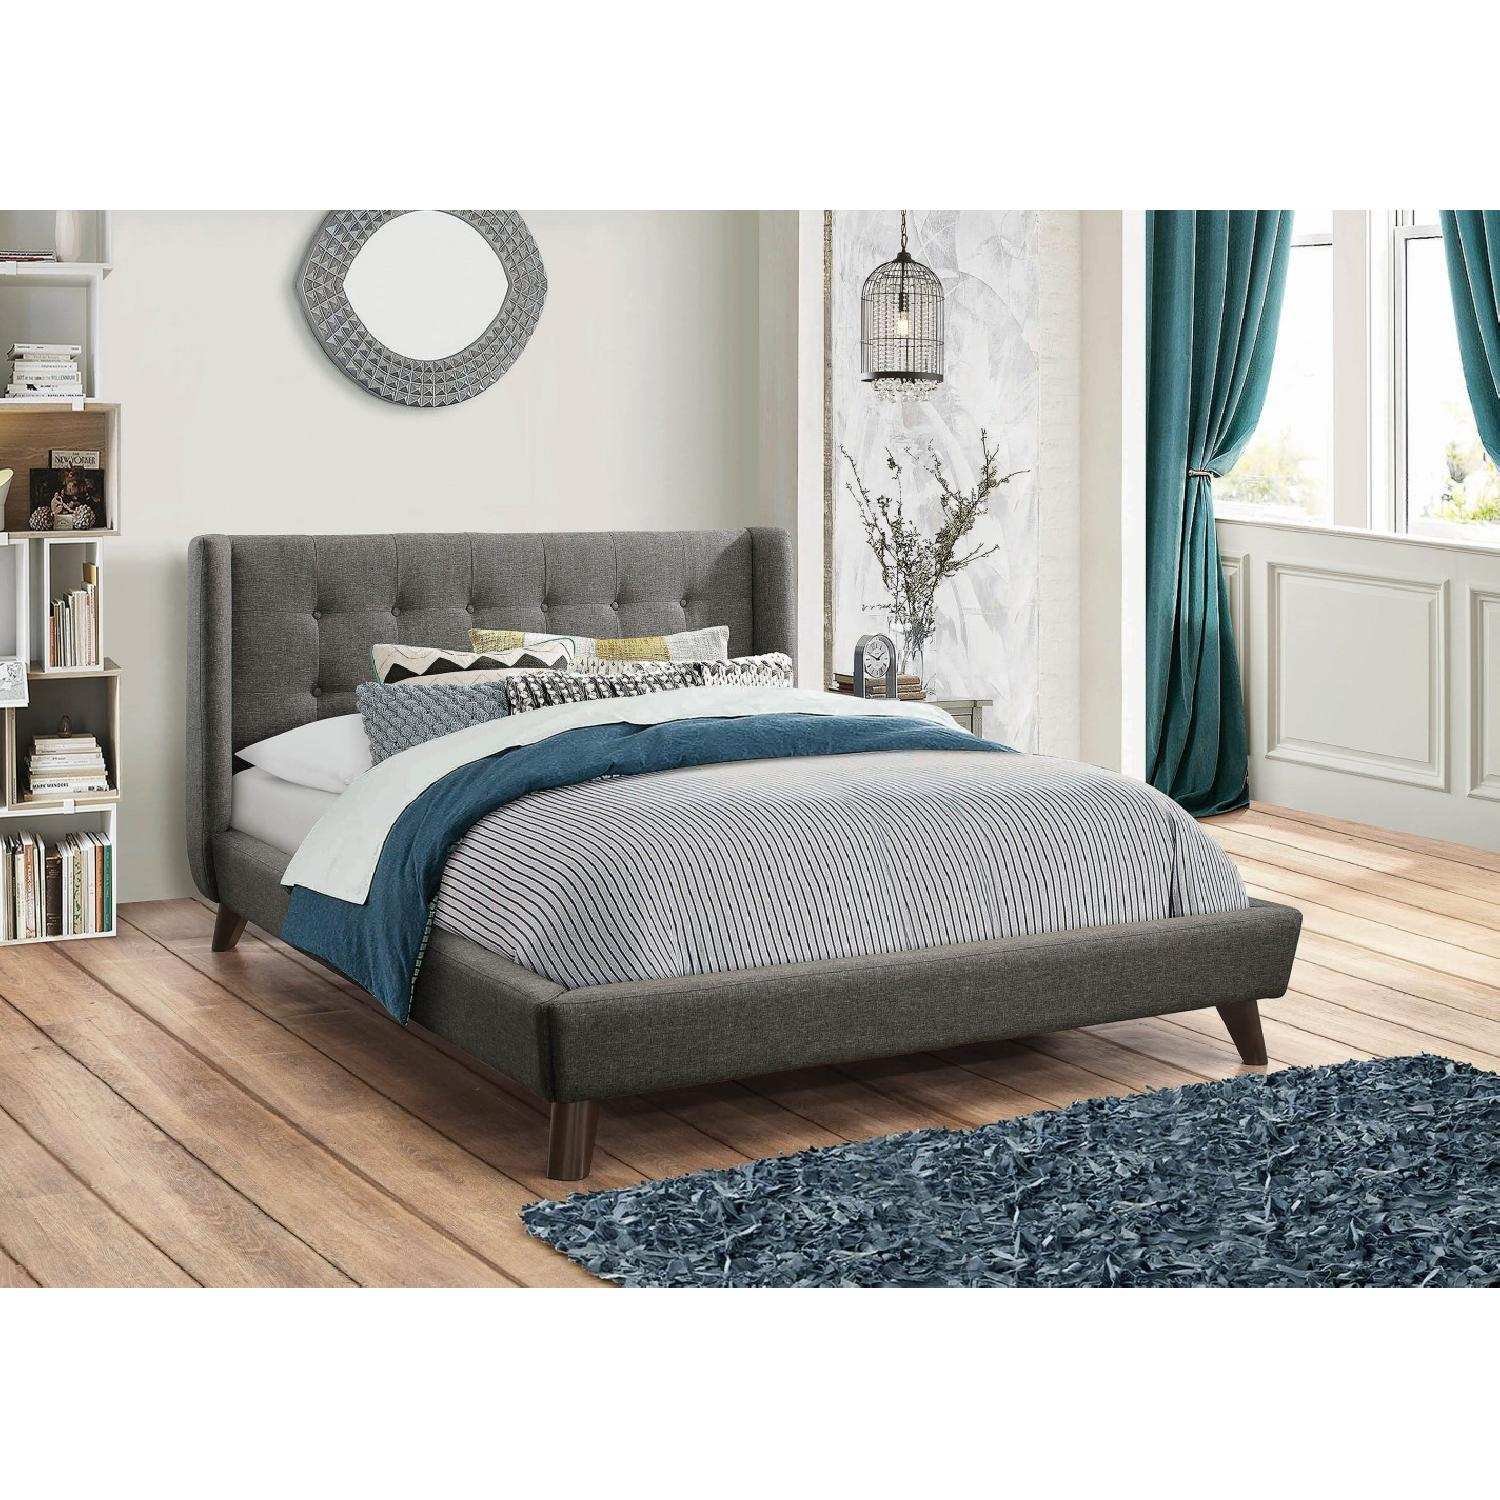 Mid Century Style King Platform Bed in Grey Fabric - image-3